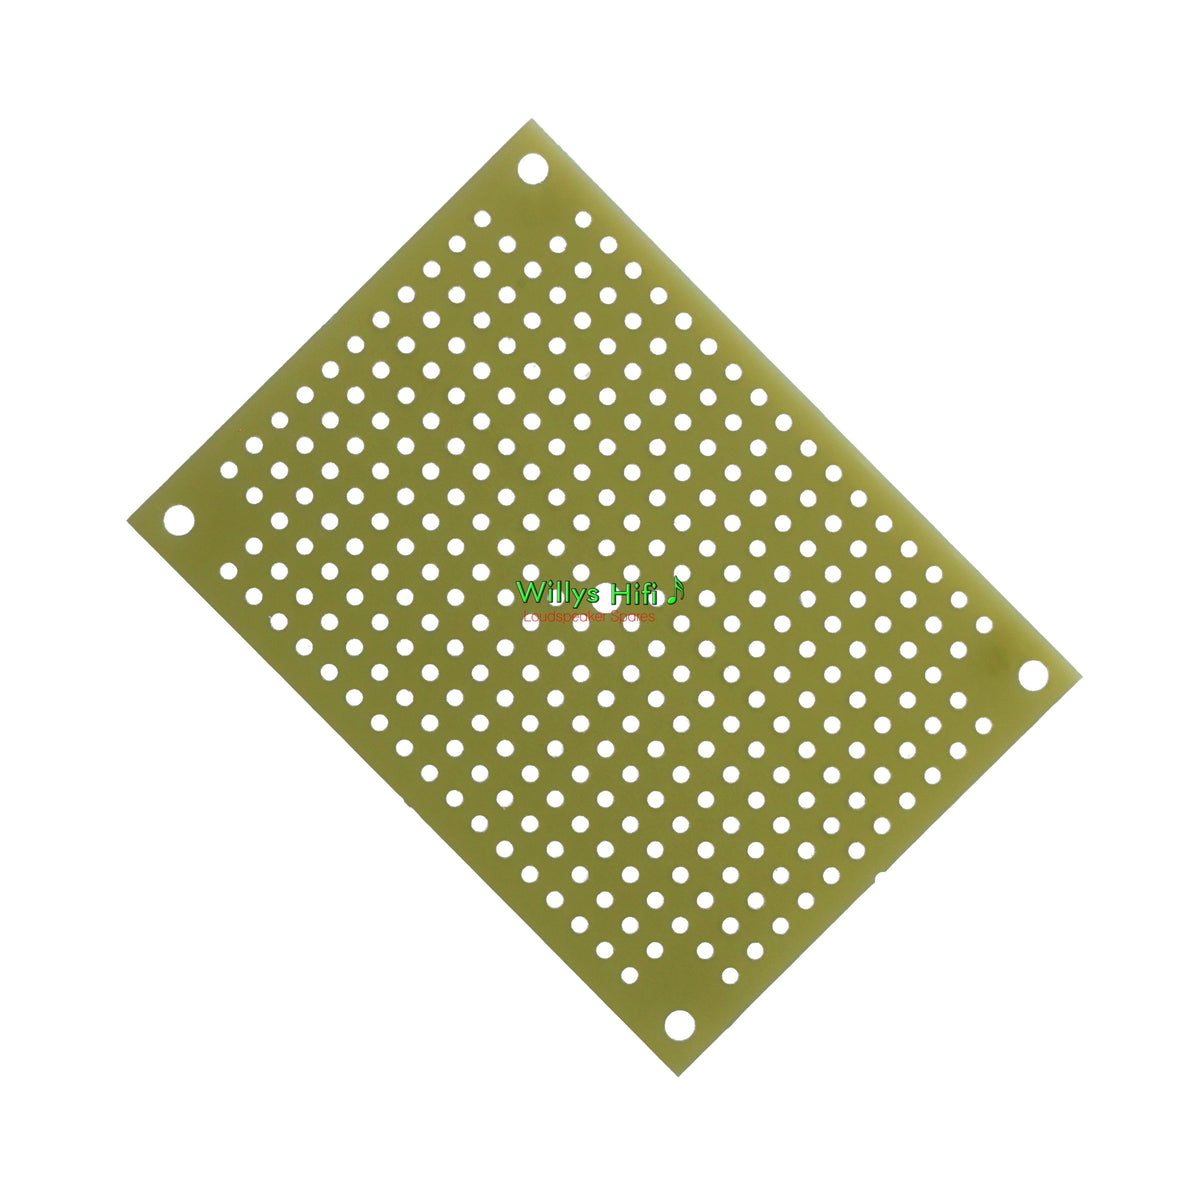 Intertechnik Grid Board RA140 - small.